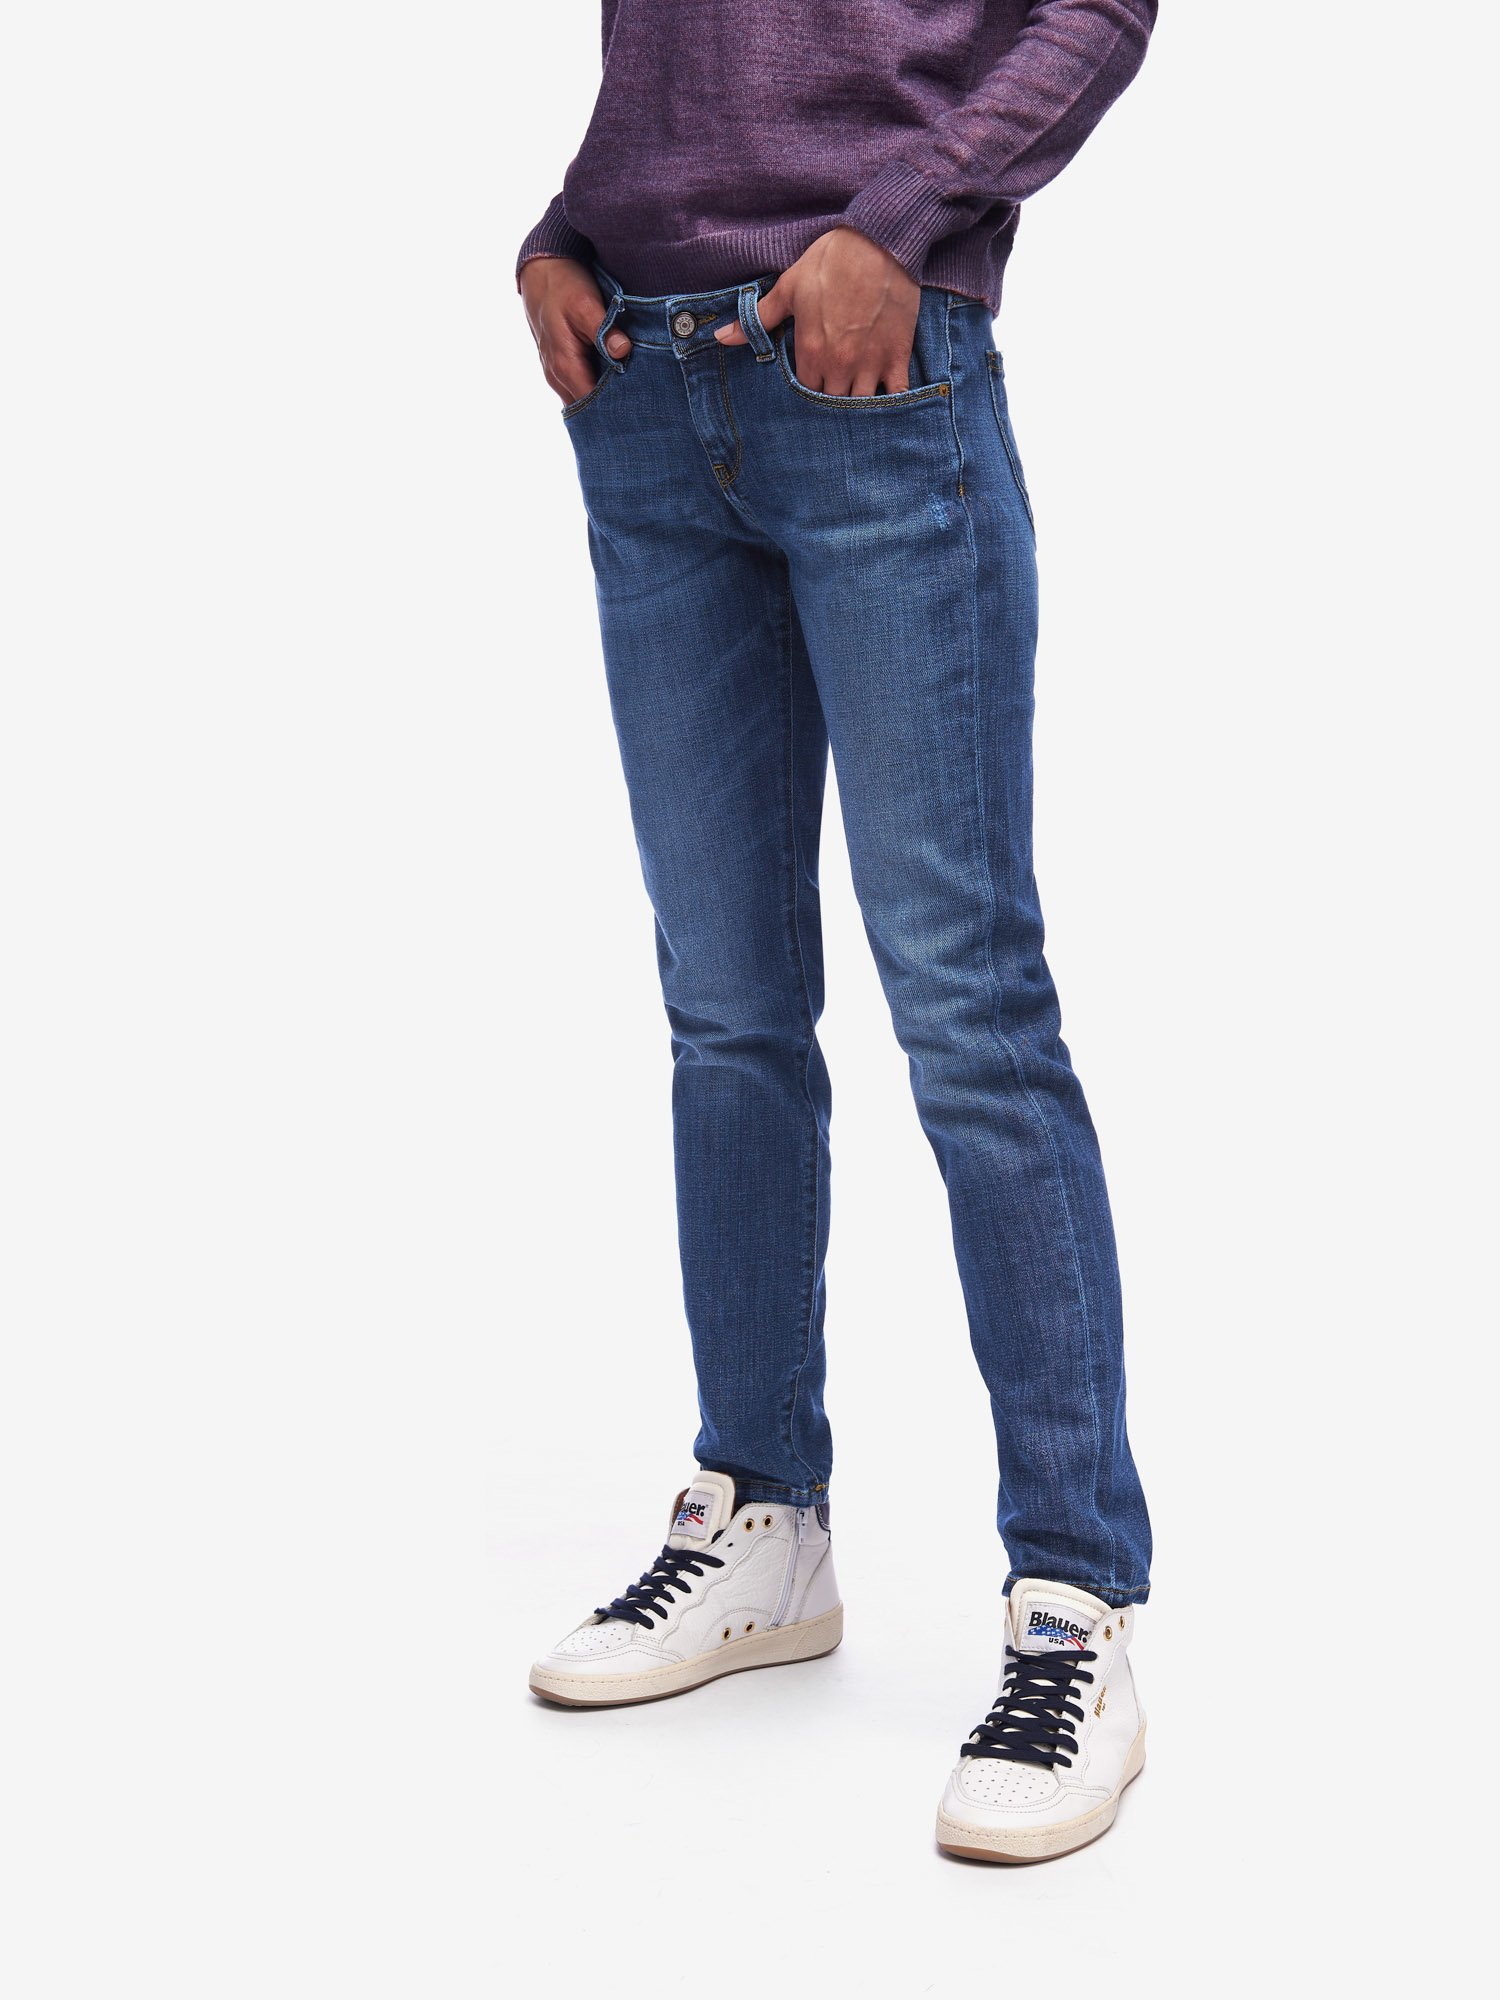 Blauer - VAQUERO OLD USED CINCO BOLSILLOS - Stone Washed Ripped - Blauer